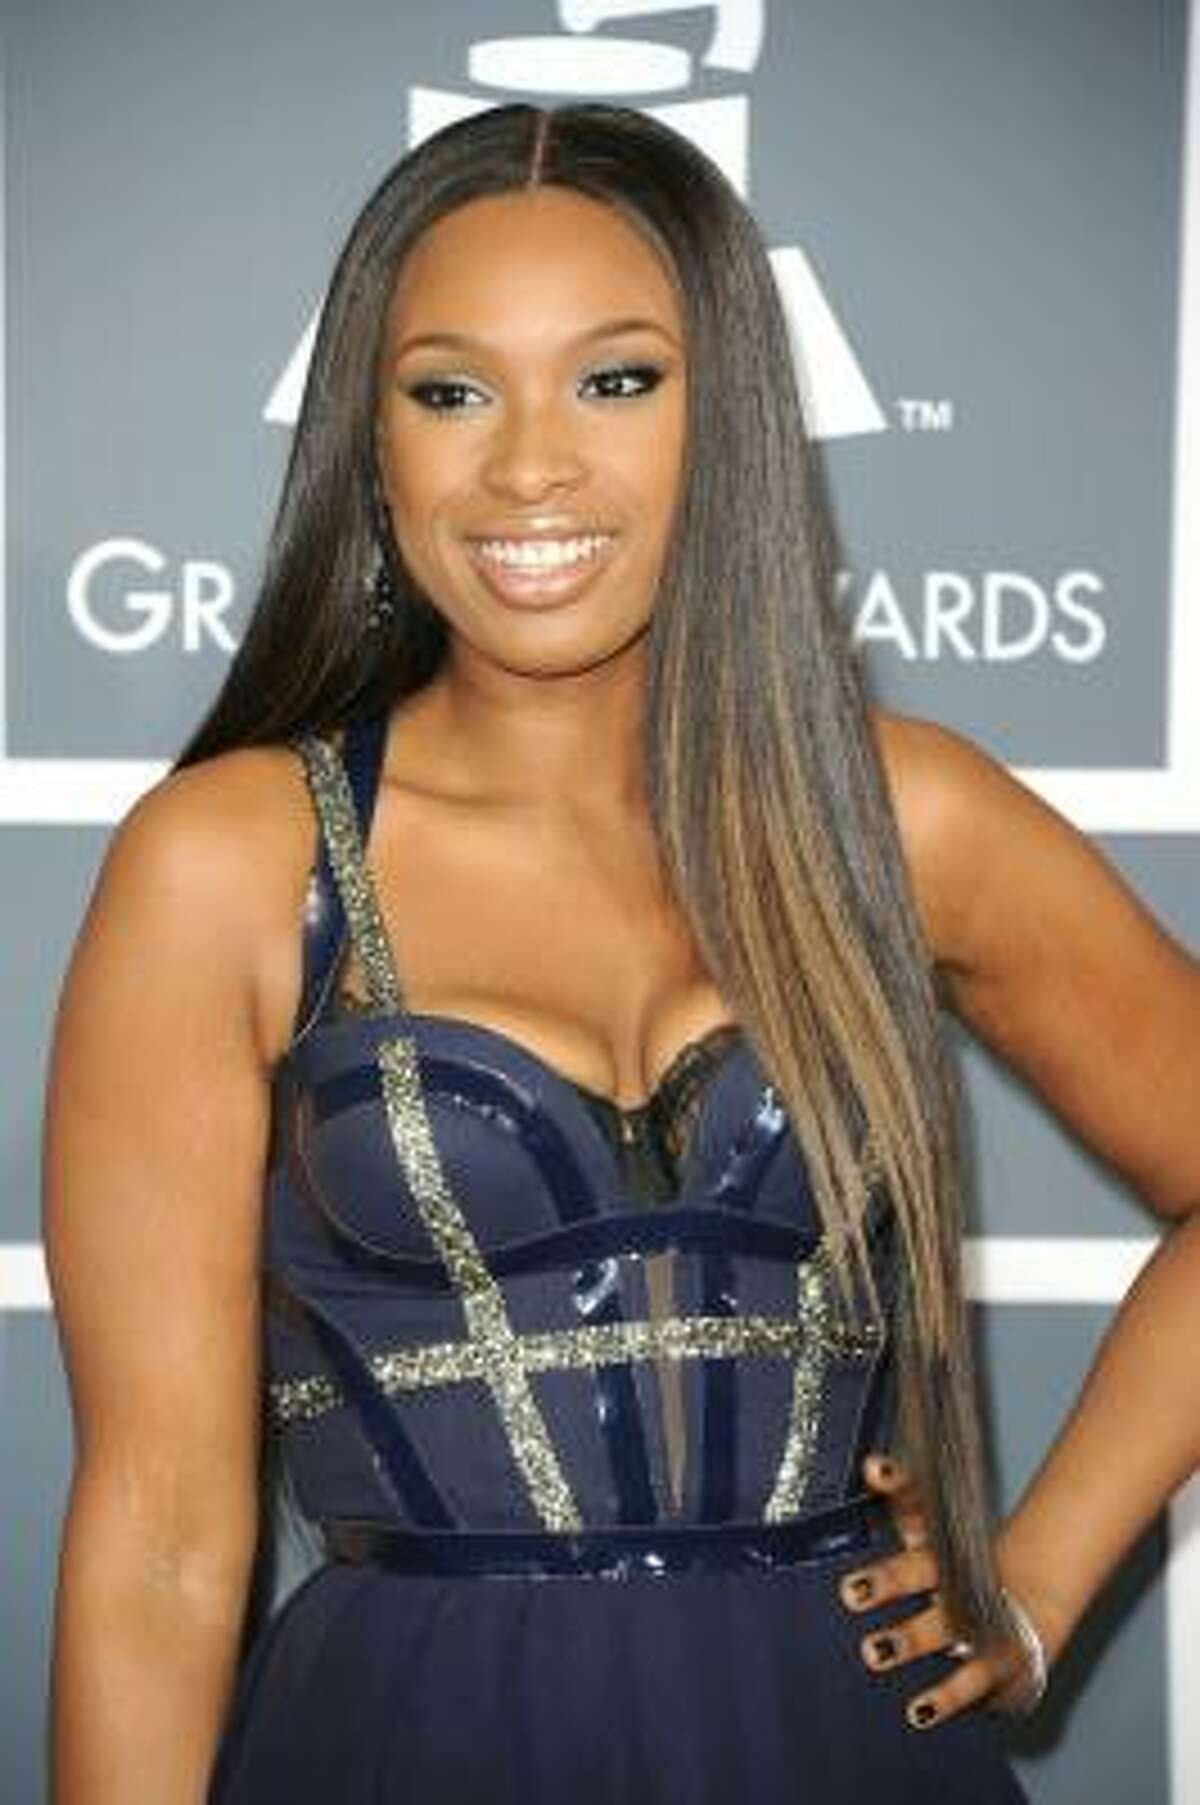 Jennifer Hudson rocking the new bod with a sweetheart of a neckline and a short-to-long hemline.